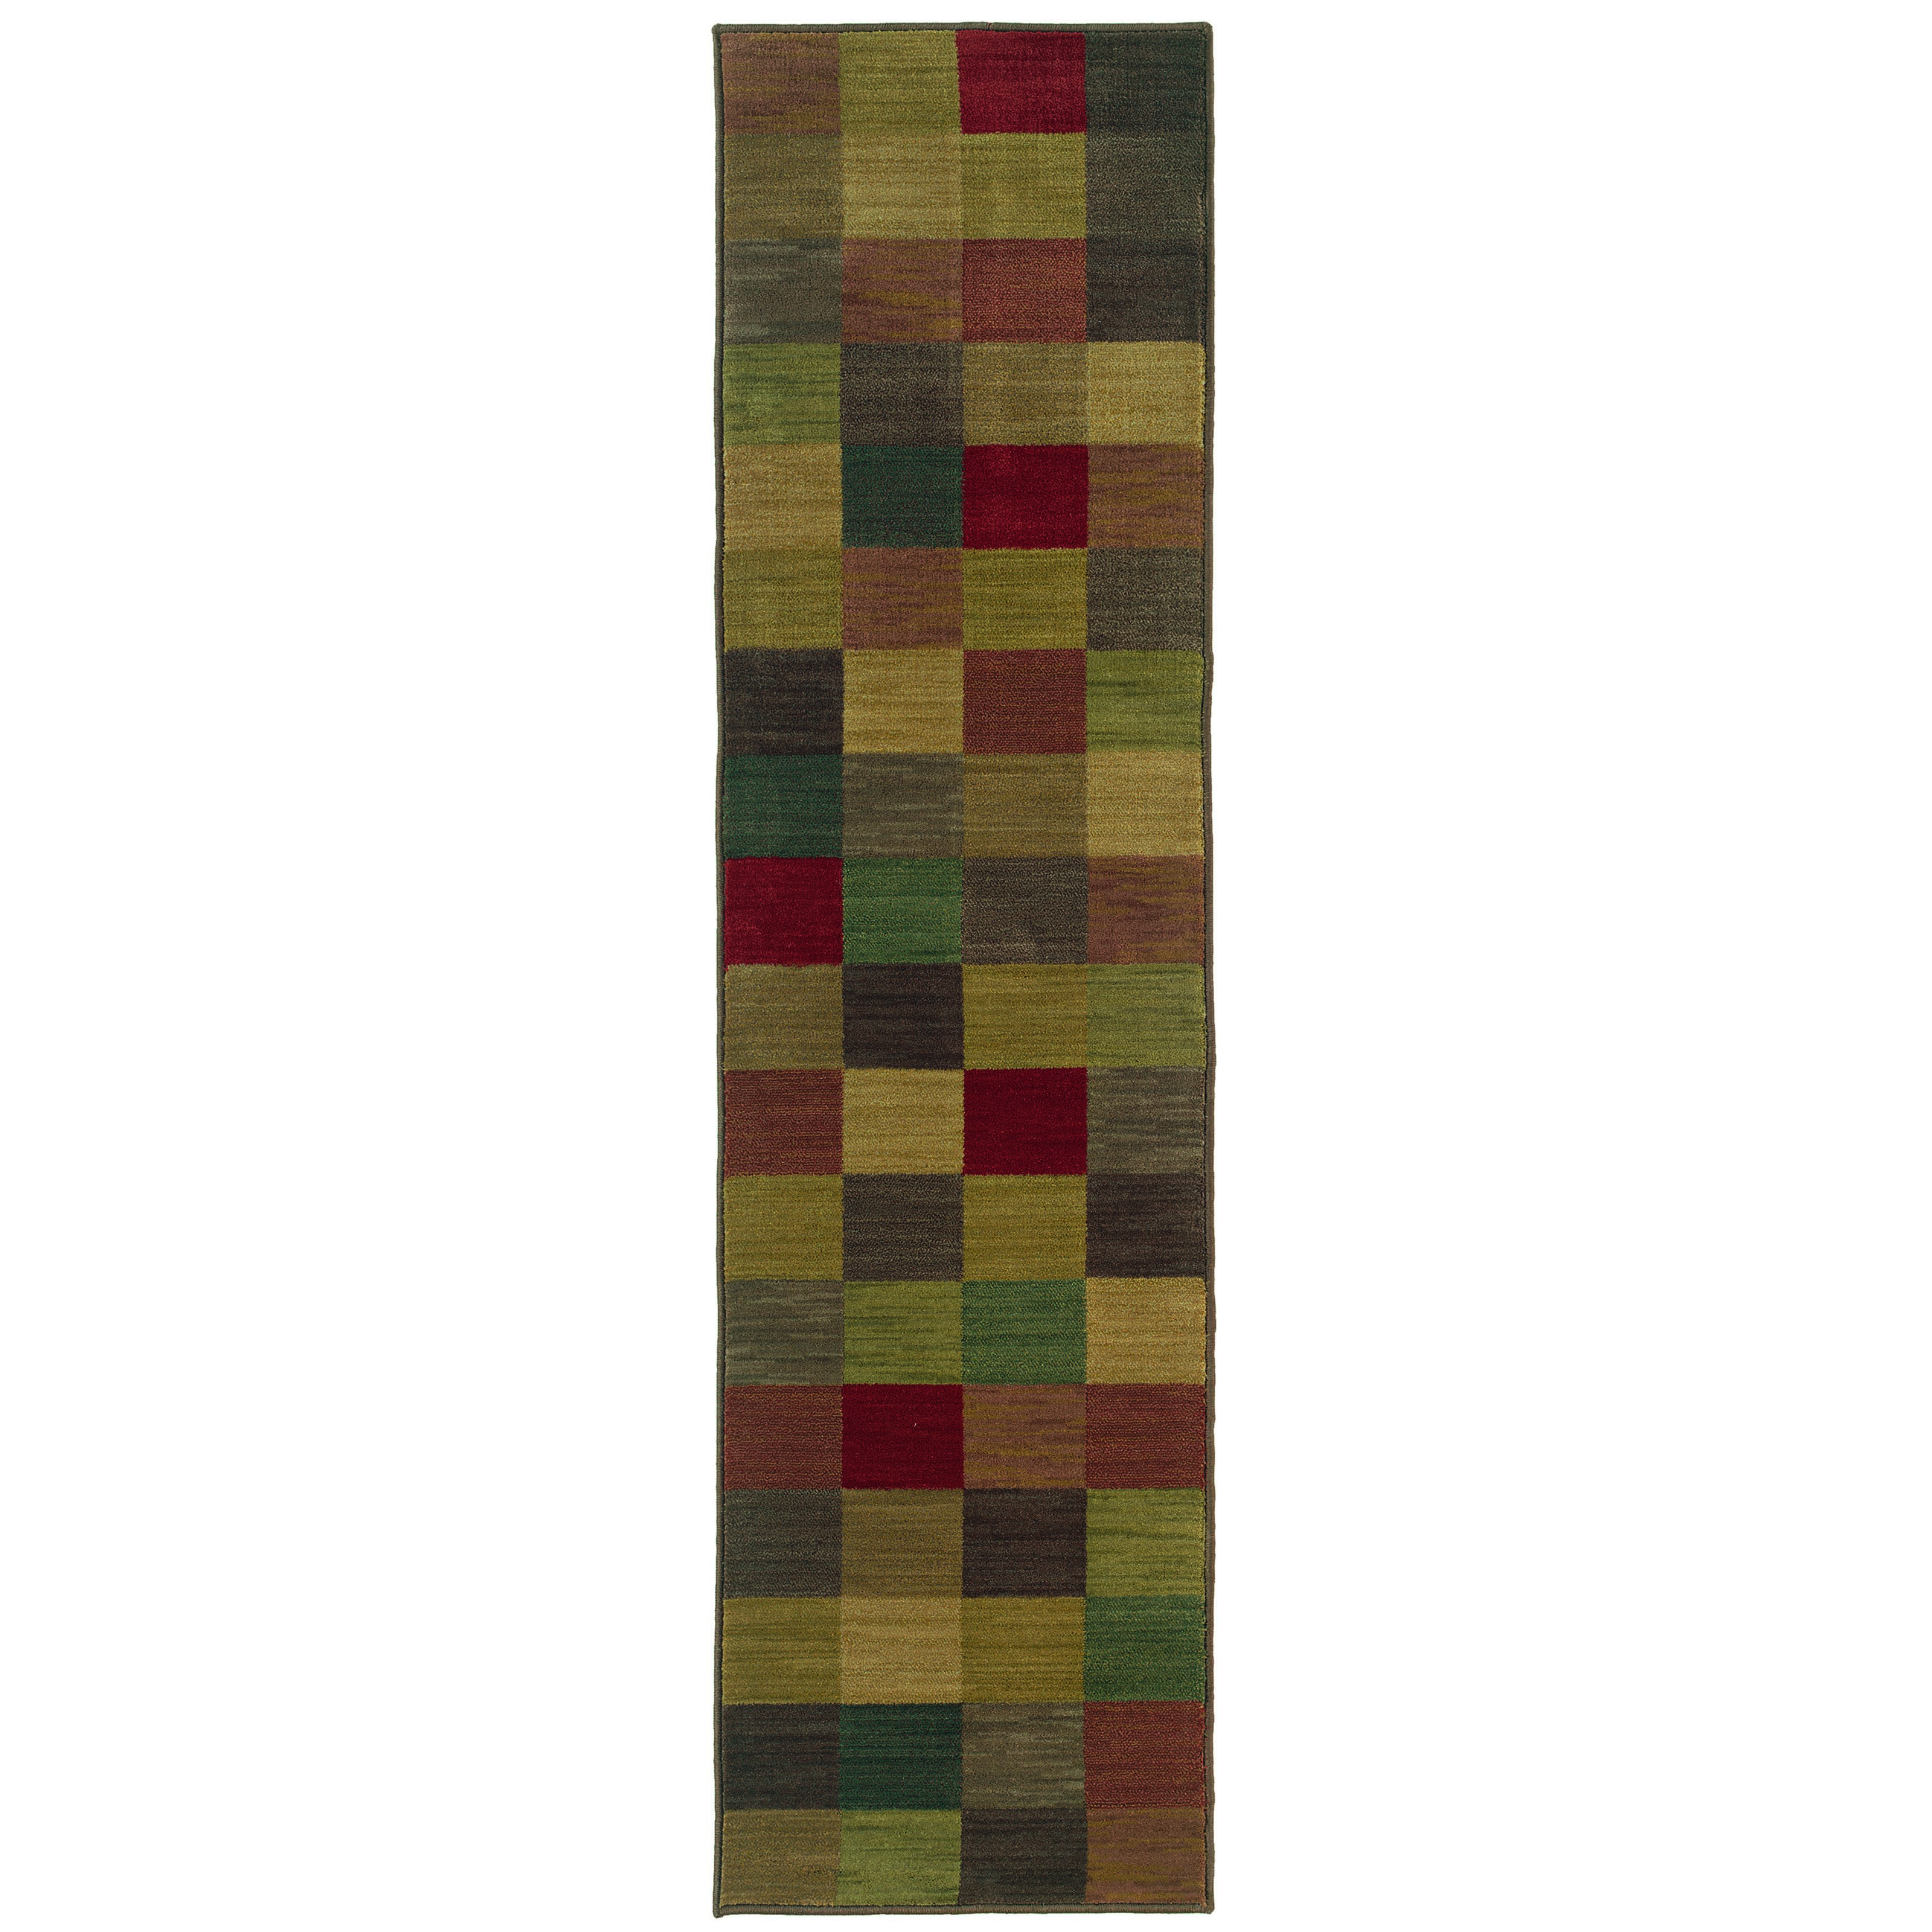 Allure 1 11 Quot X 7 6 Quot Rug Rotmans Rugs Worcester